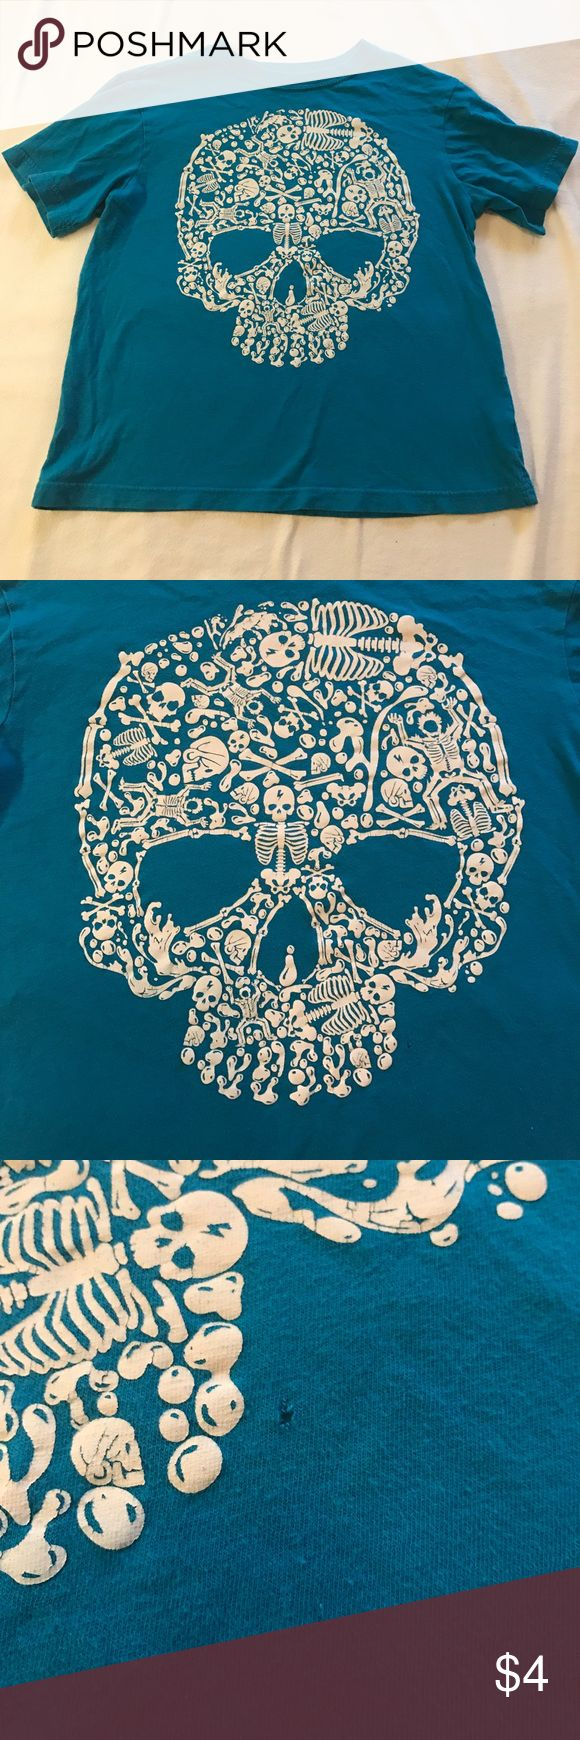 Children's Place skull tee Bright blue skull tee from Children's Place! This was very much loved by my son, he is just too big for it now. There is two small issues with it. (Photos shown) perhaps someone who's good with a needle, thread, and patience lol can work on this baby! Shirt reads: size M 7/8 100% cotton Children's Place Shirts & Tops Tees - Short Sleeve